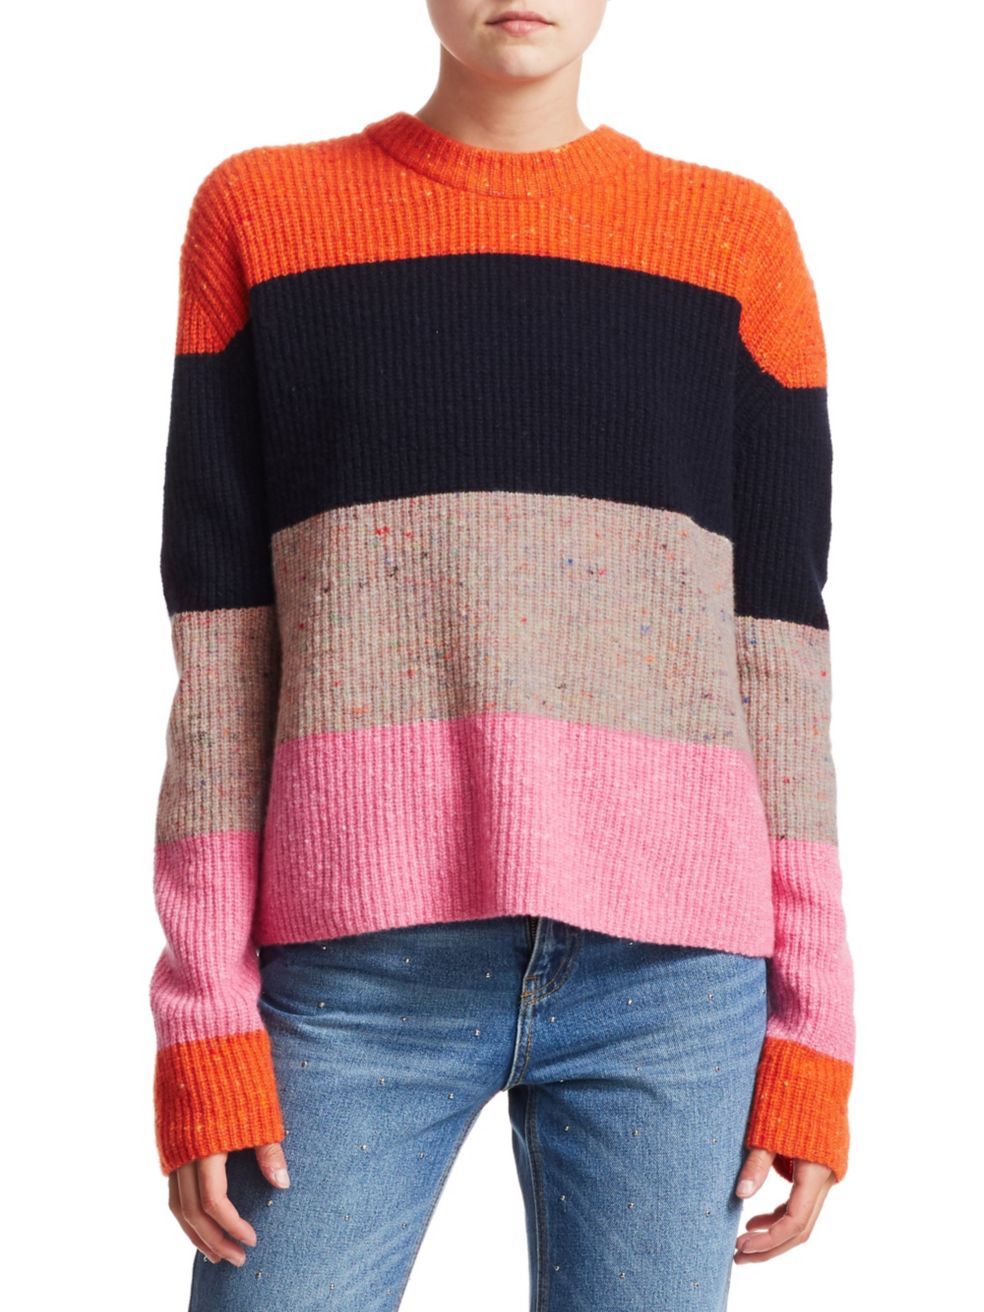 Georgina Bold Stripe Knit Sweater, $395